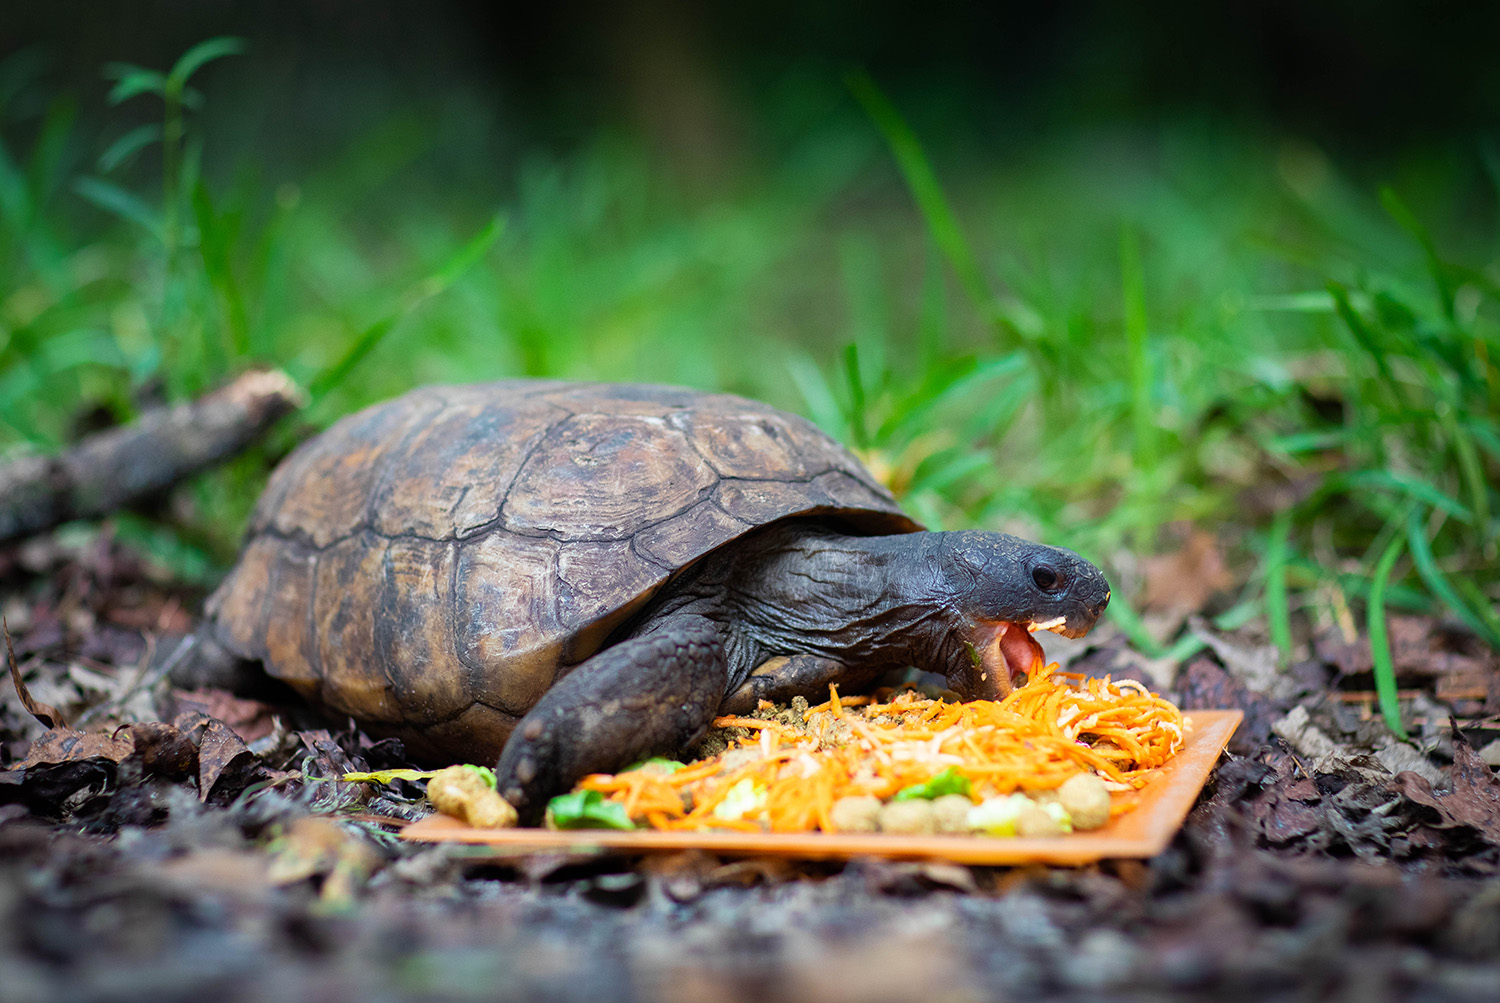 A Gopher Tortoise eats a meal at the Santa Fe College Teaching Zoo on Sept. 16, 2020 (Matt Stamey/Santa Fe College ) ***Subjects Have Releases***